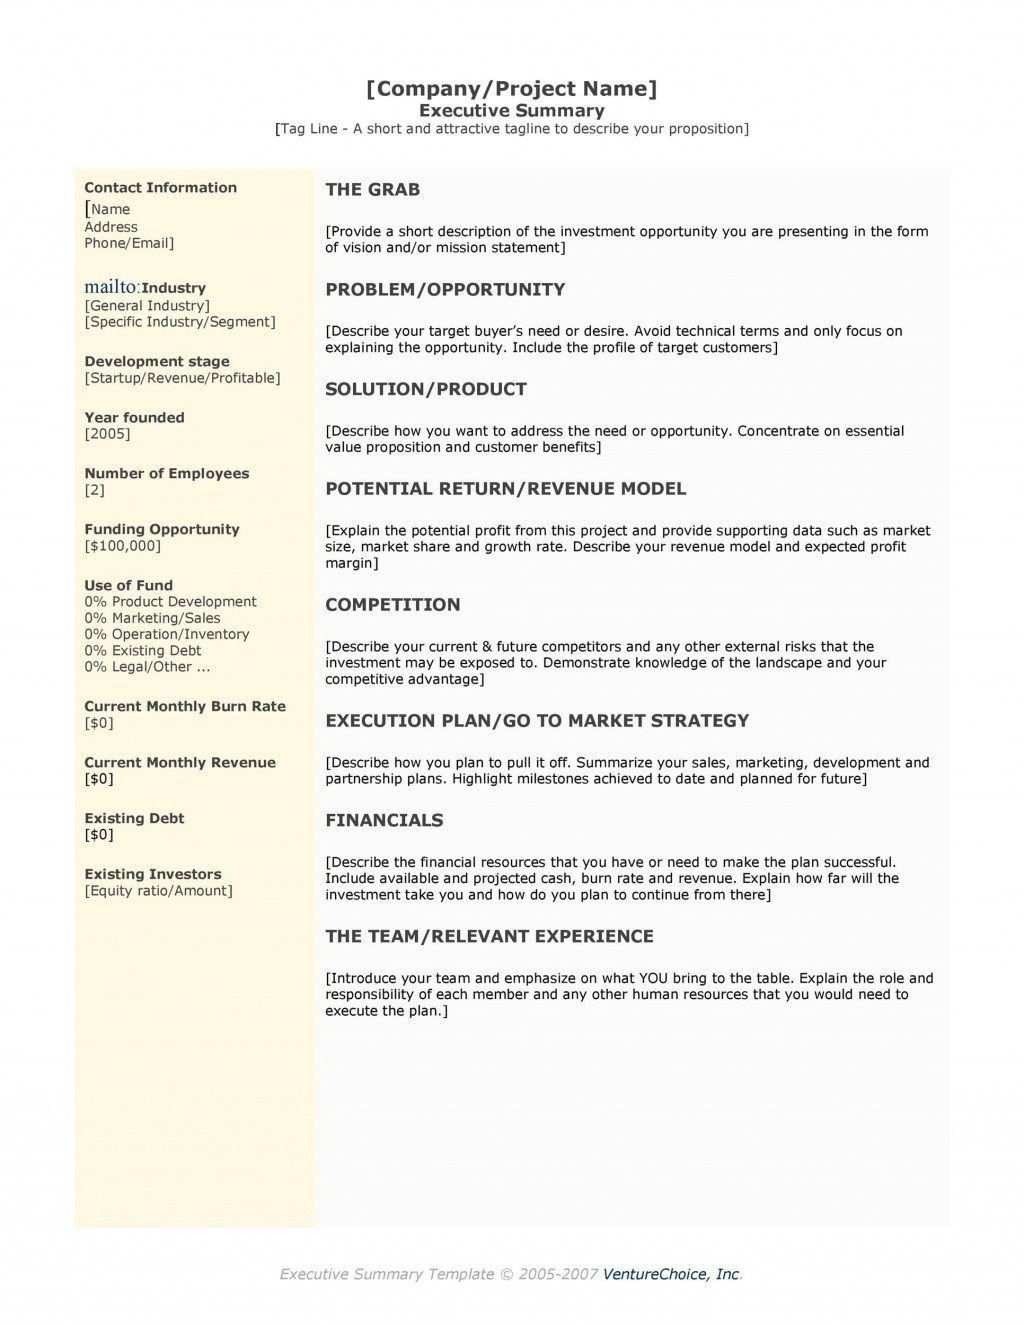 009 Formidable Executive Summary Template Word Free Highest Quality Large